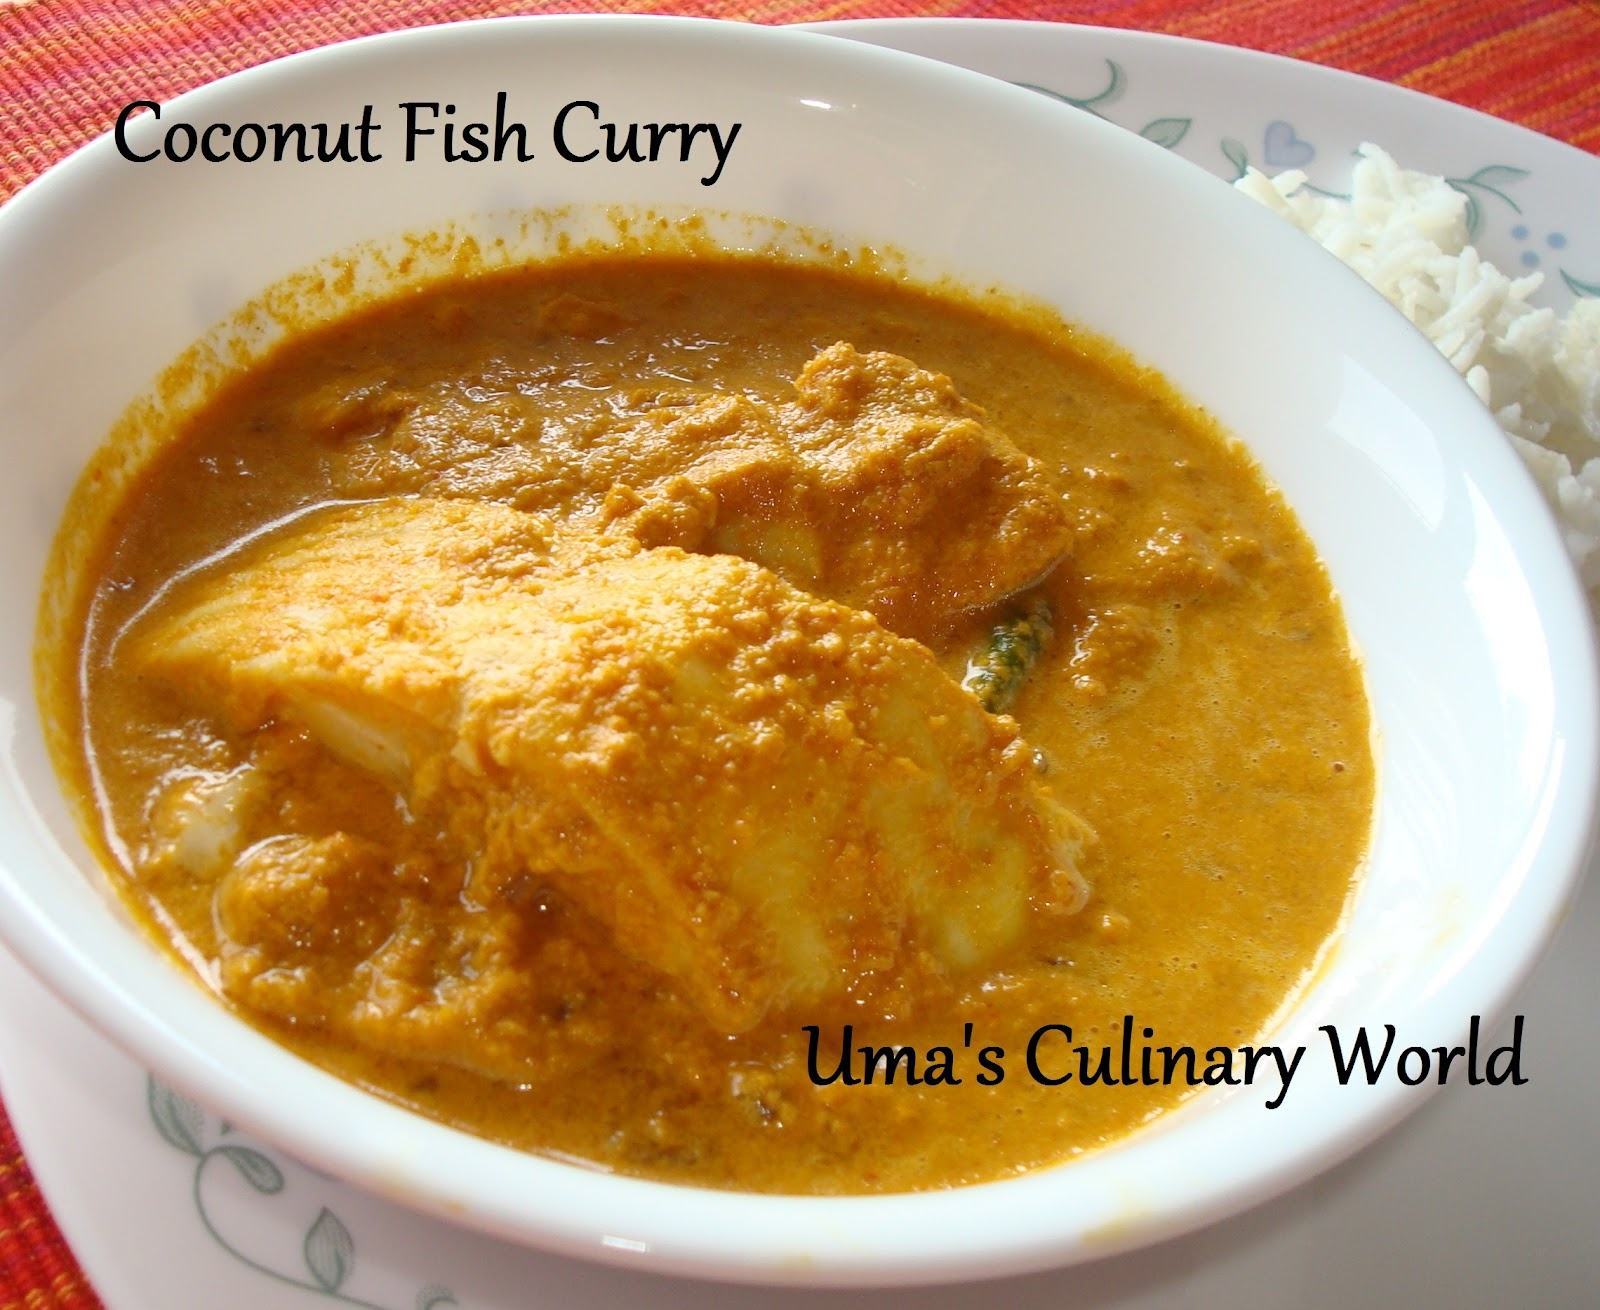 Uma's Culinary World: Coconut Fish Curry